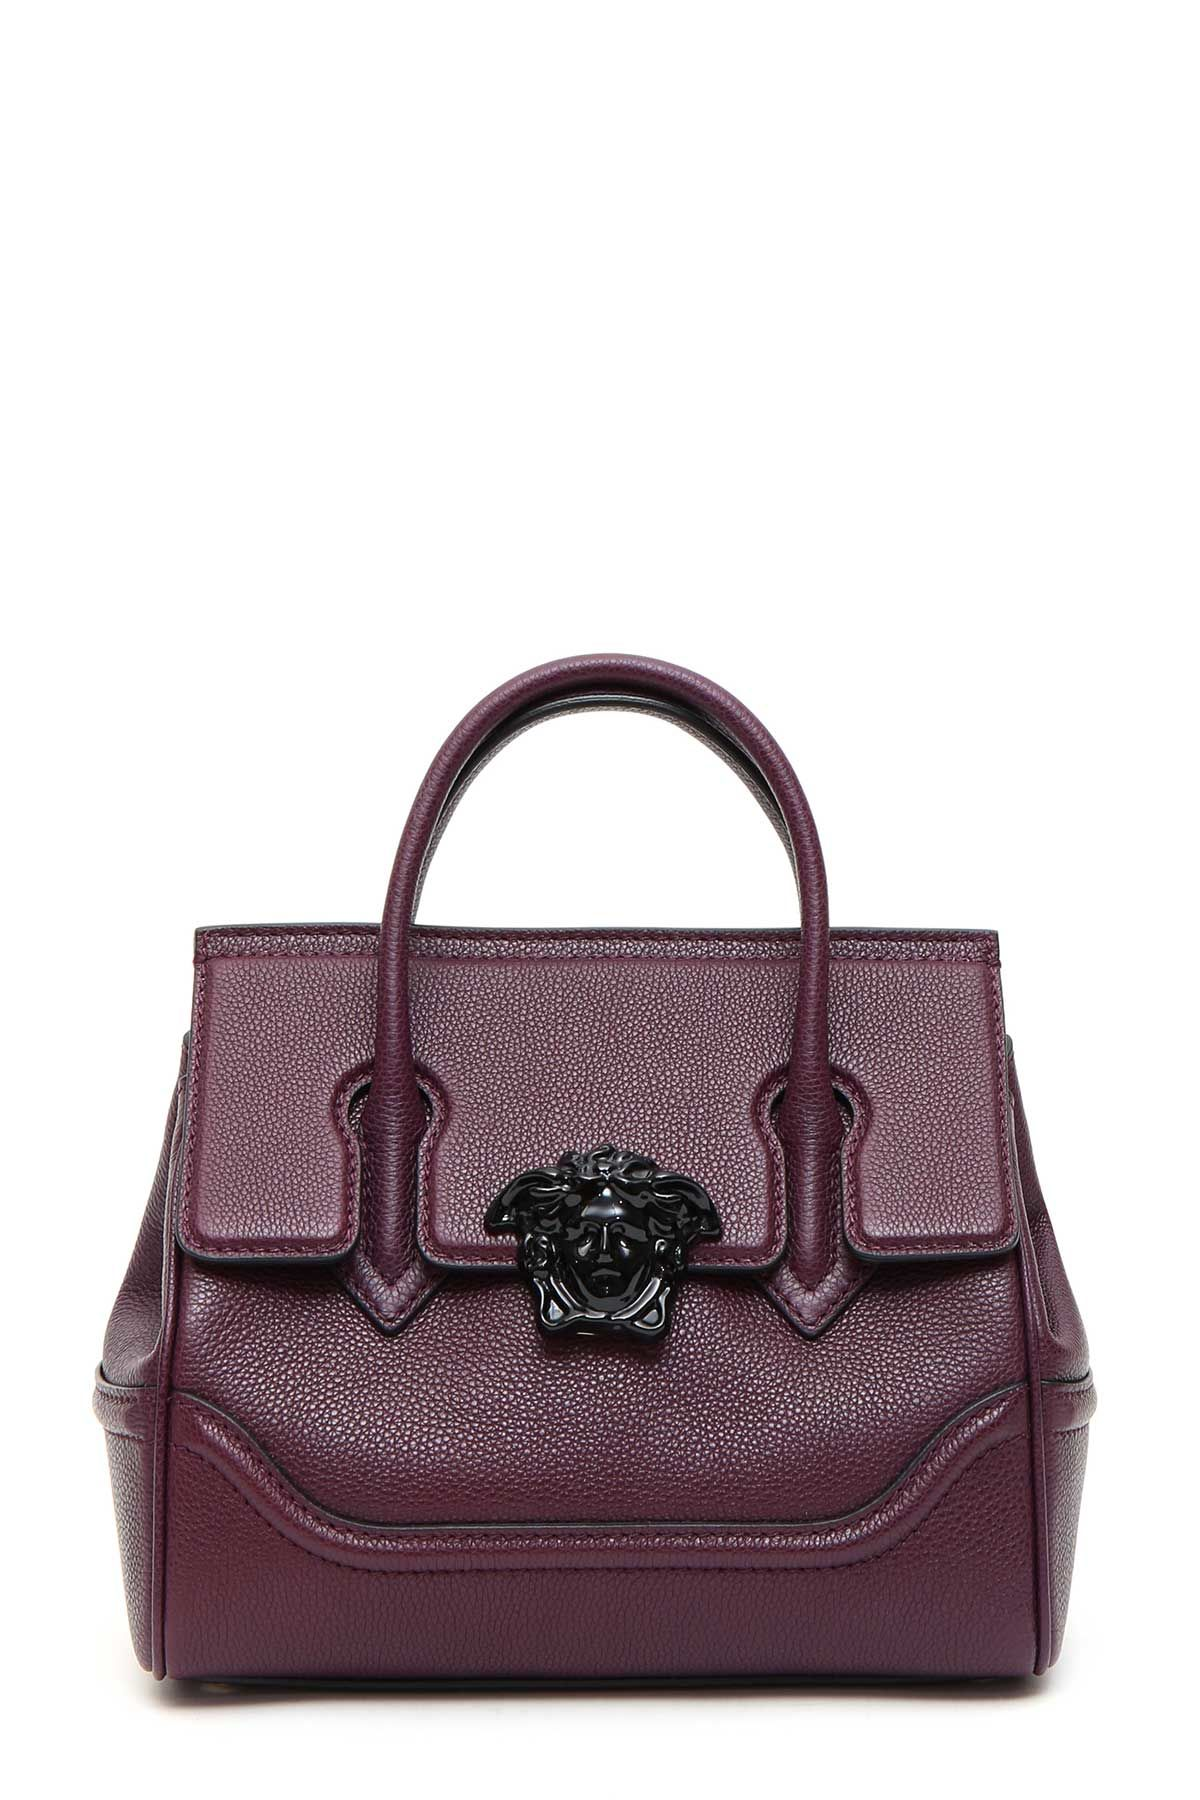 Versace Top Handle Vitello Con Grana